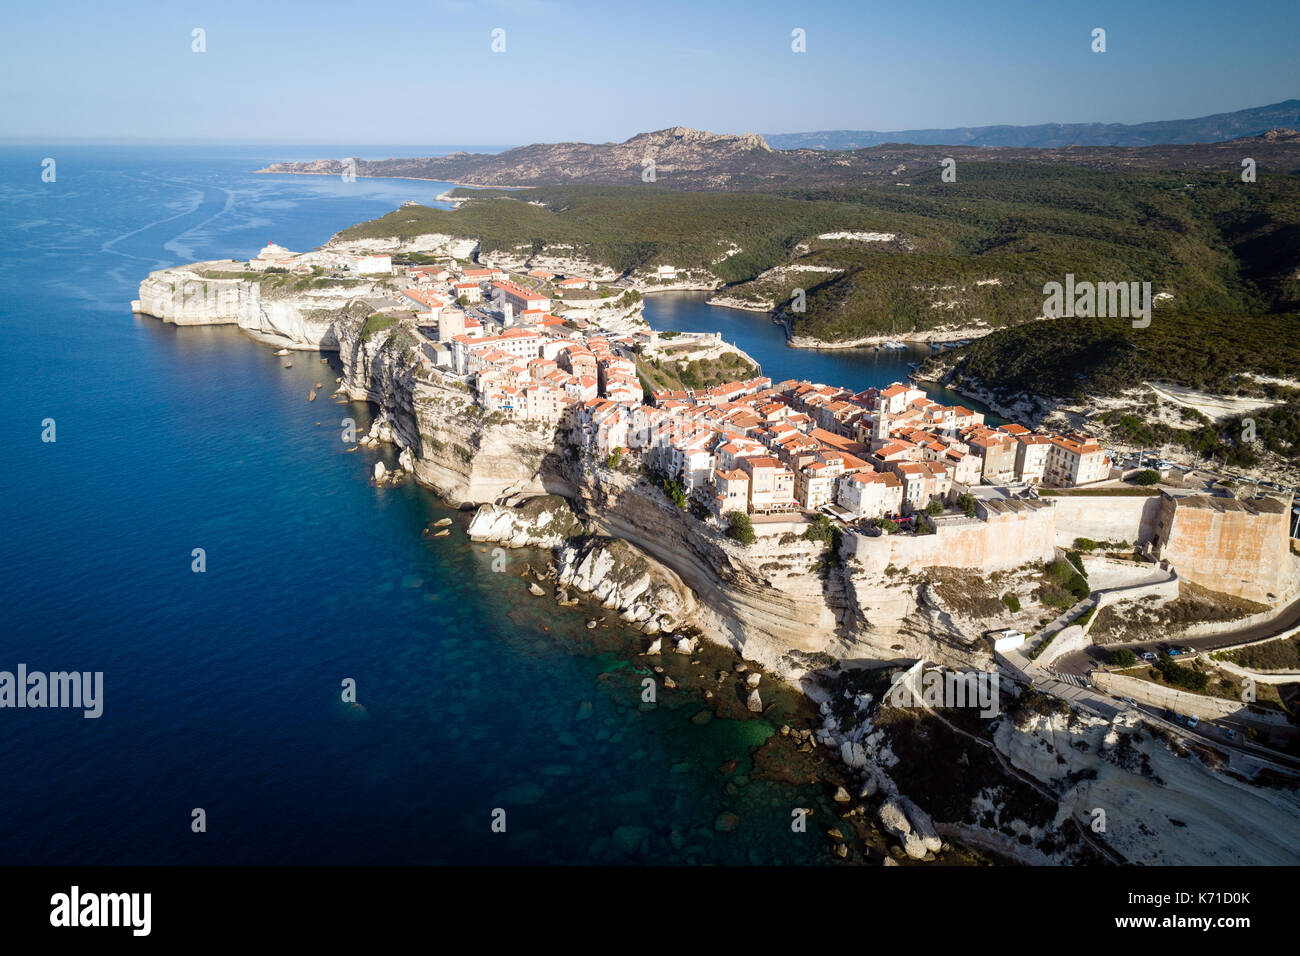 Aerial view of limestone cliffs, and the old town of Bonifacio, Corsica island, France - Stock Image